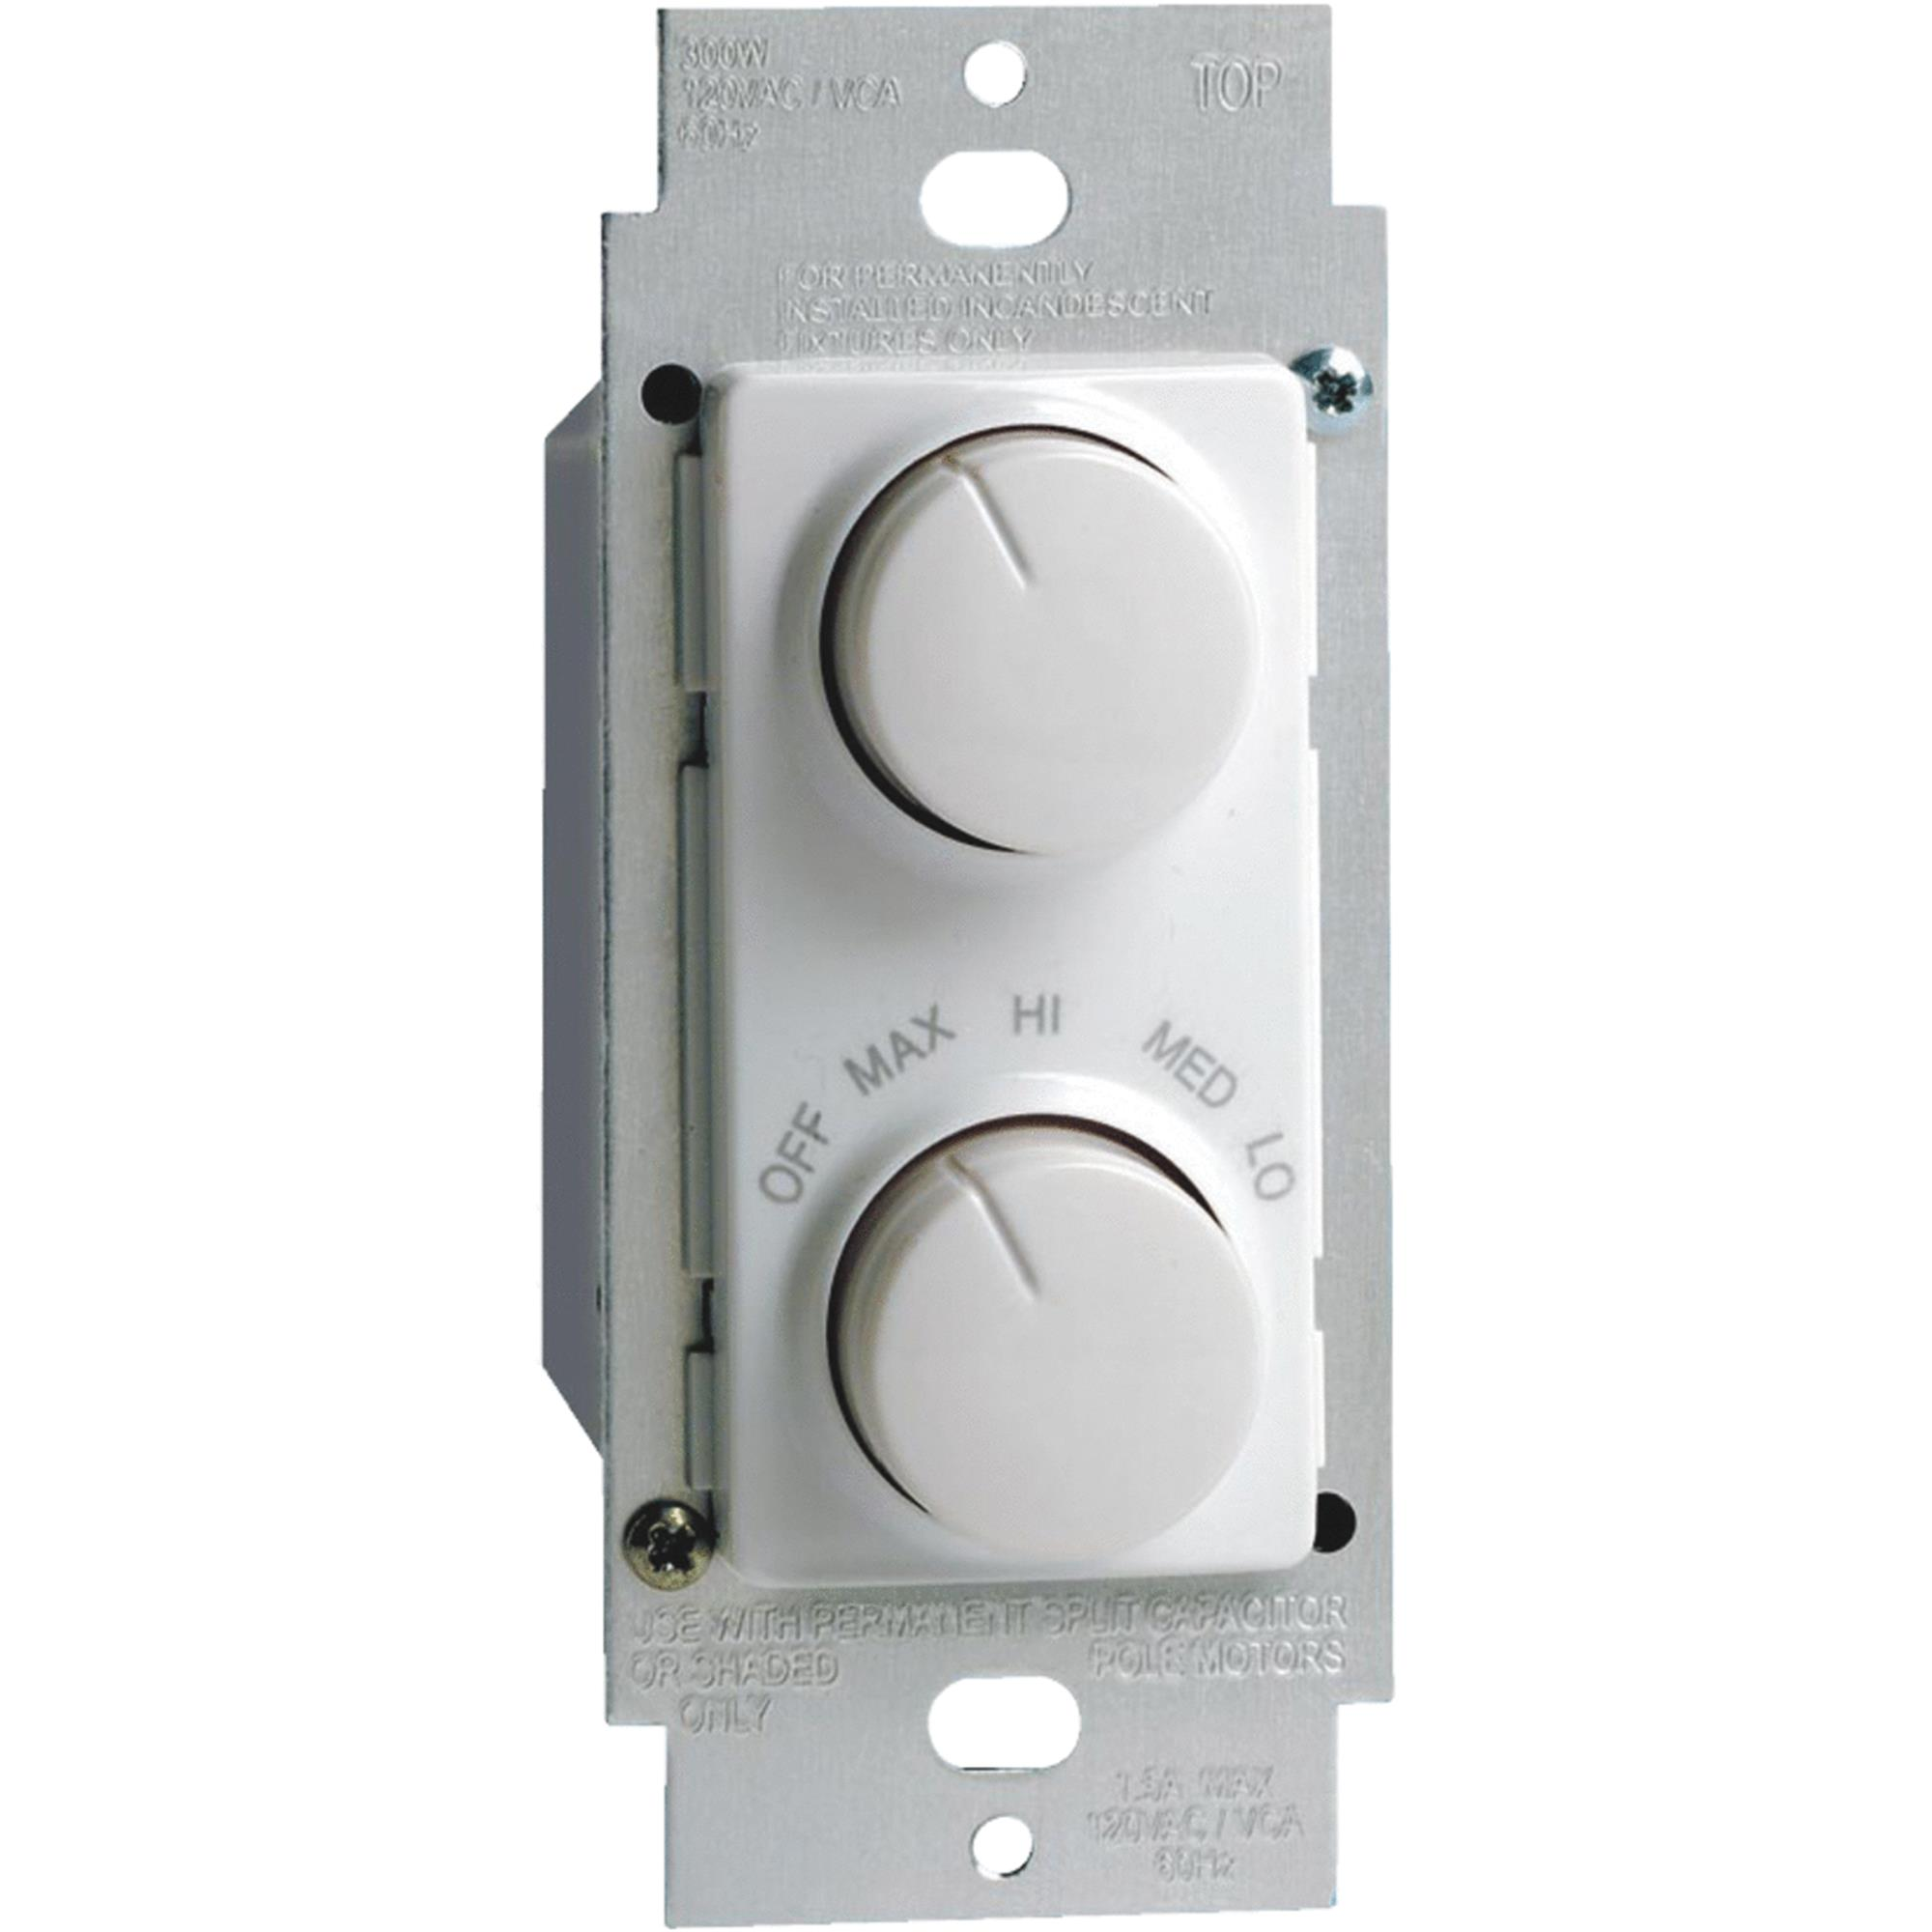 Leviton Light and Fan Control Switch by Leviton